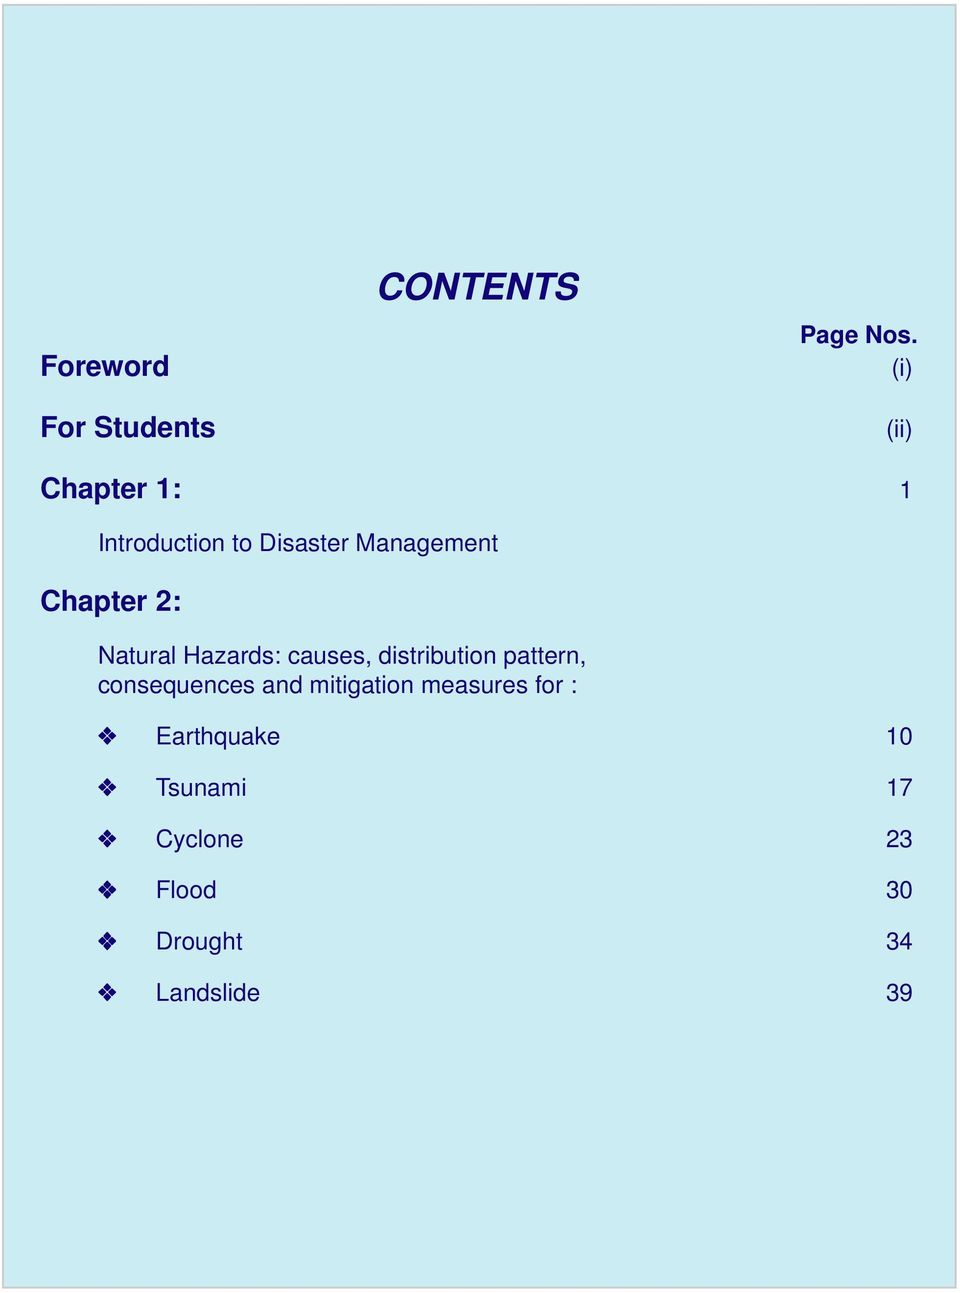 2: Natural Hazards: causes, distribution pattern, consequences and